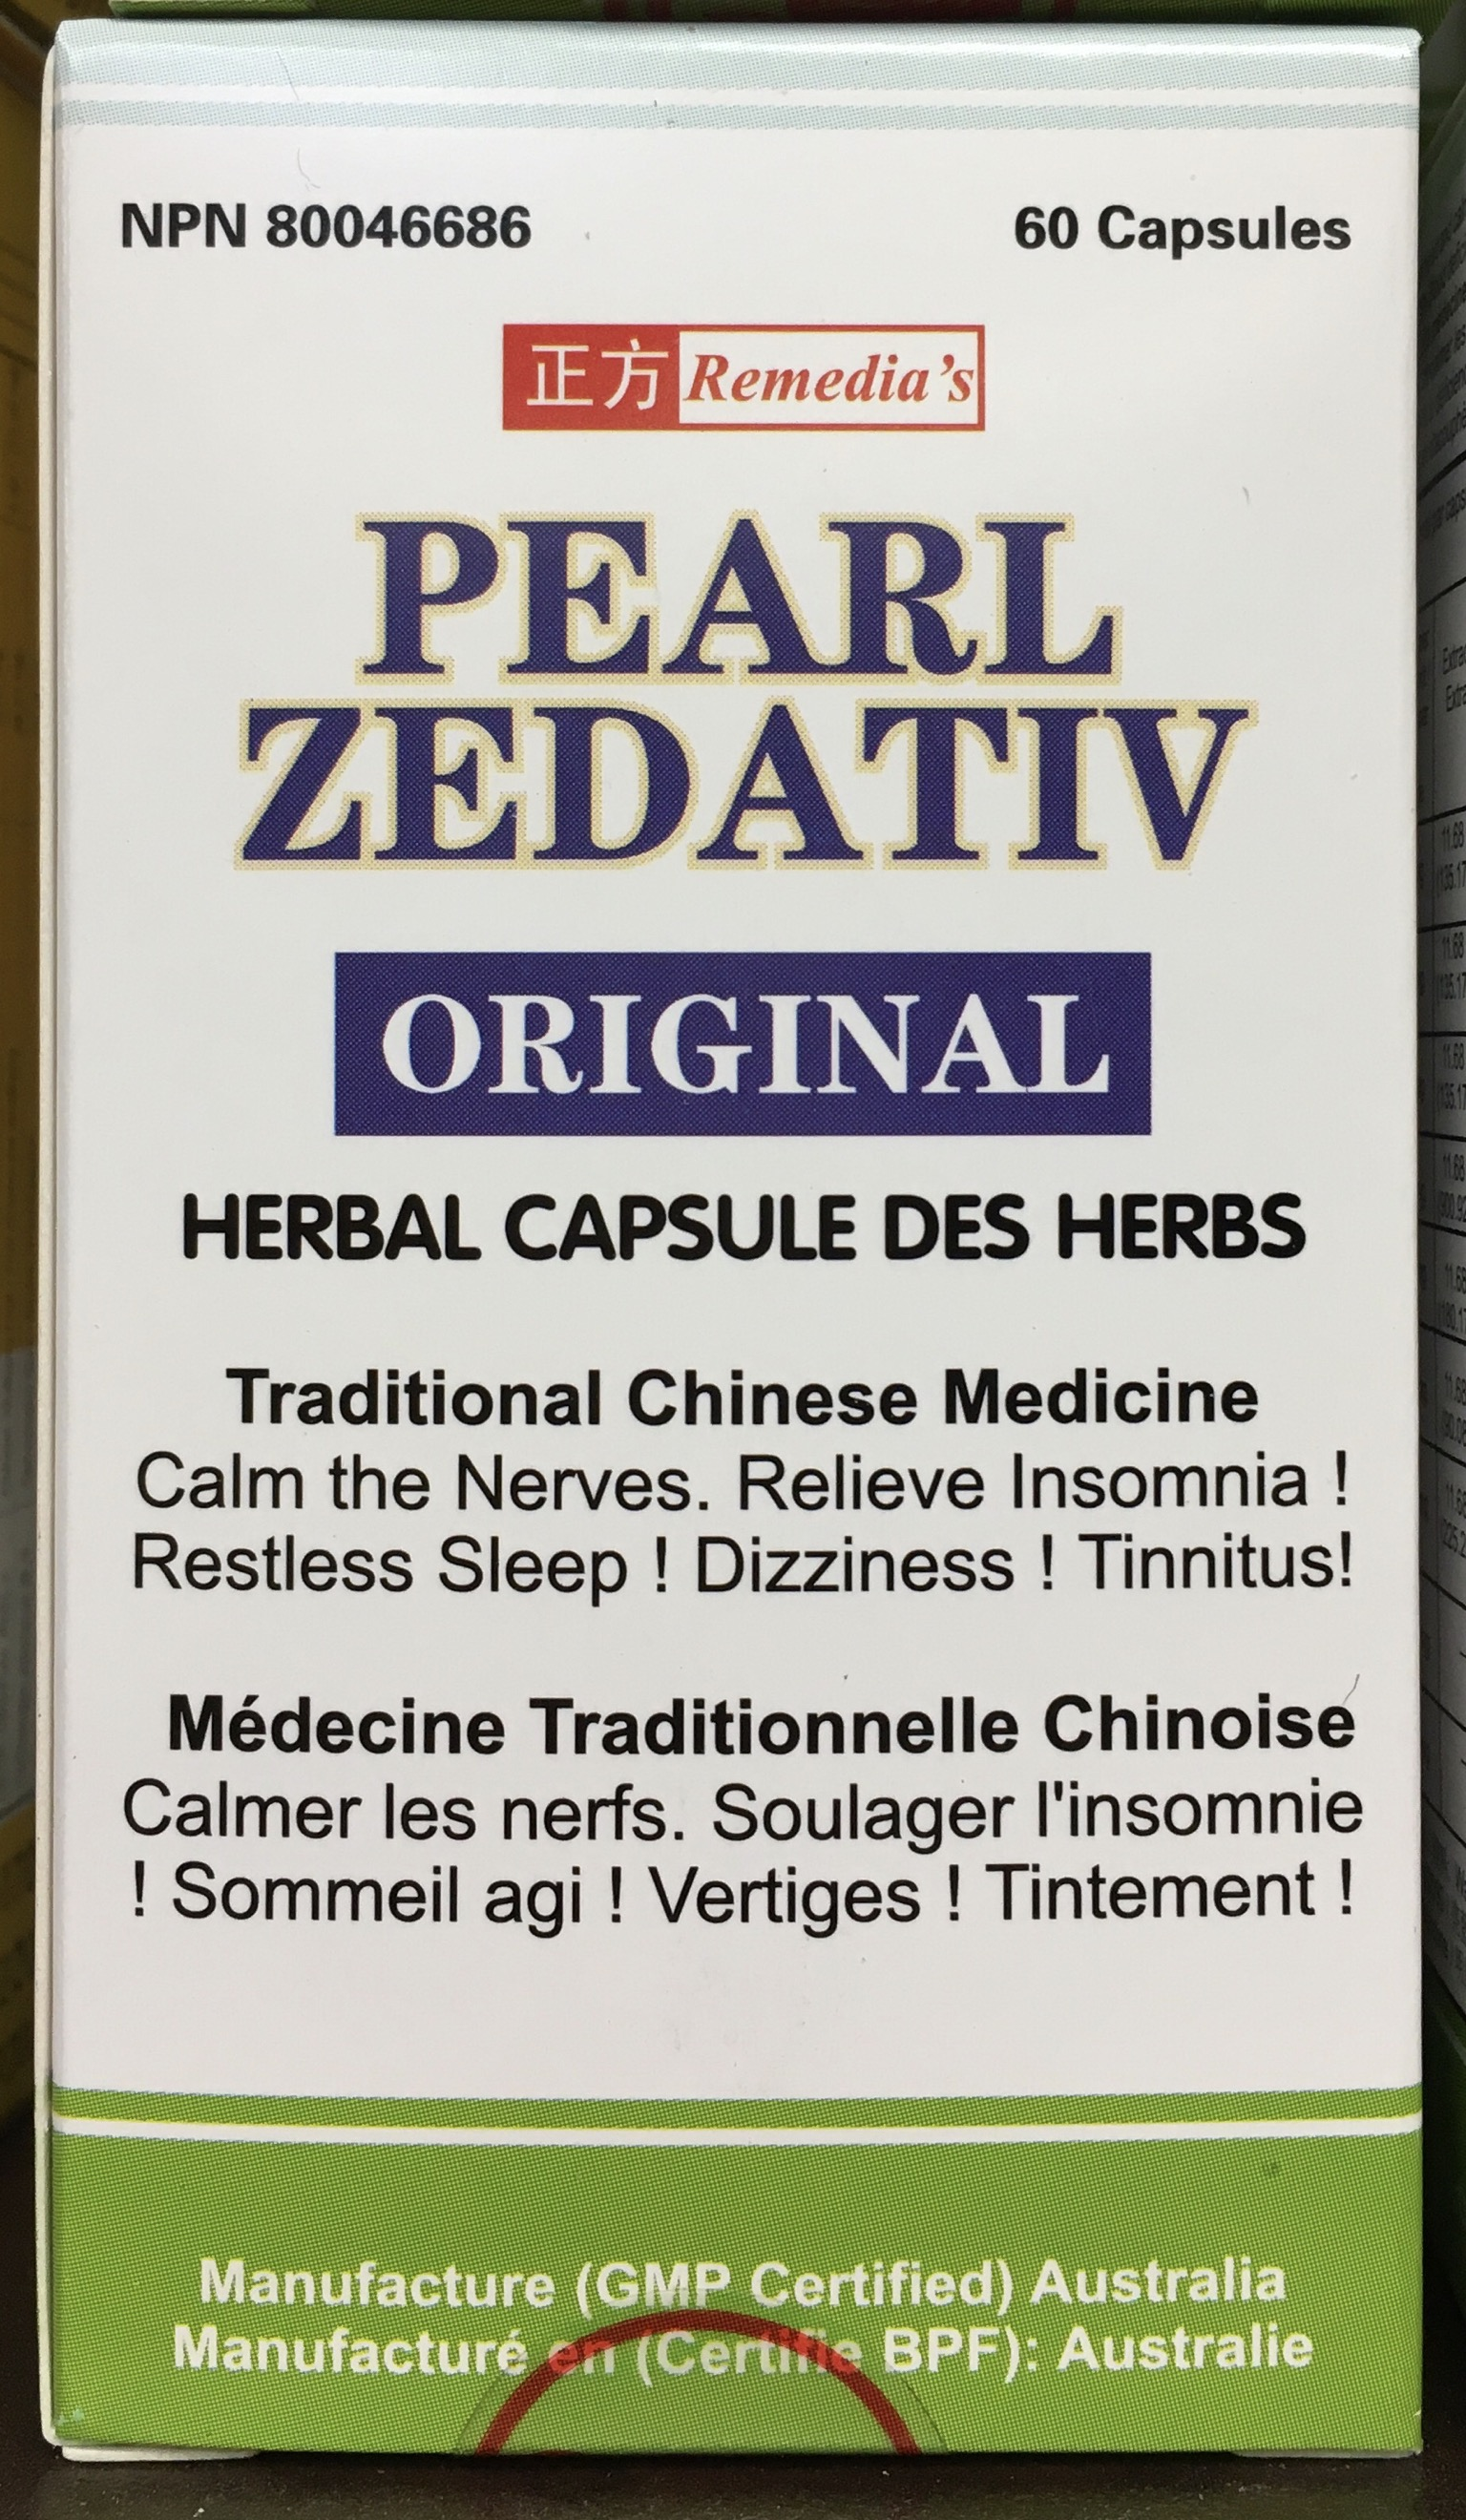 Pearl Zedativ Herbal Capsule (Buy 3, Get 1 Free)